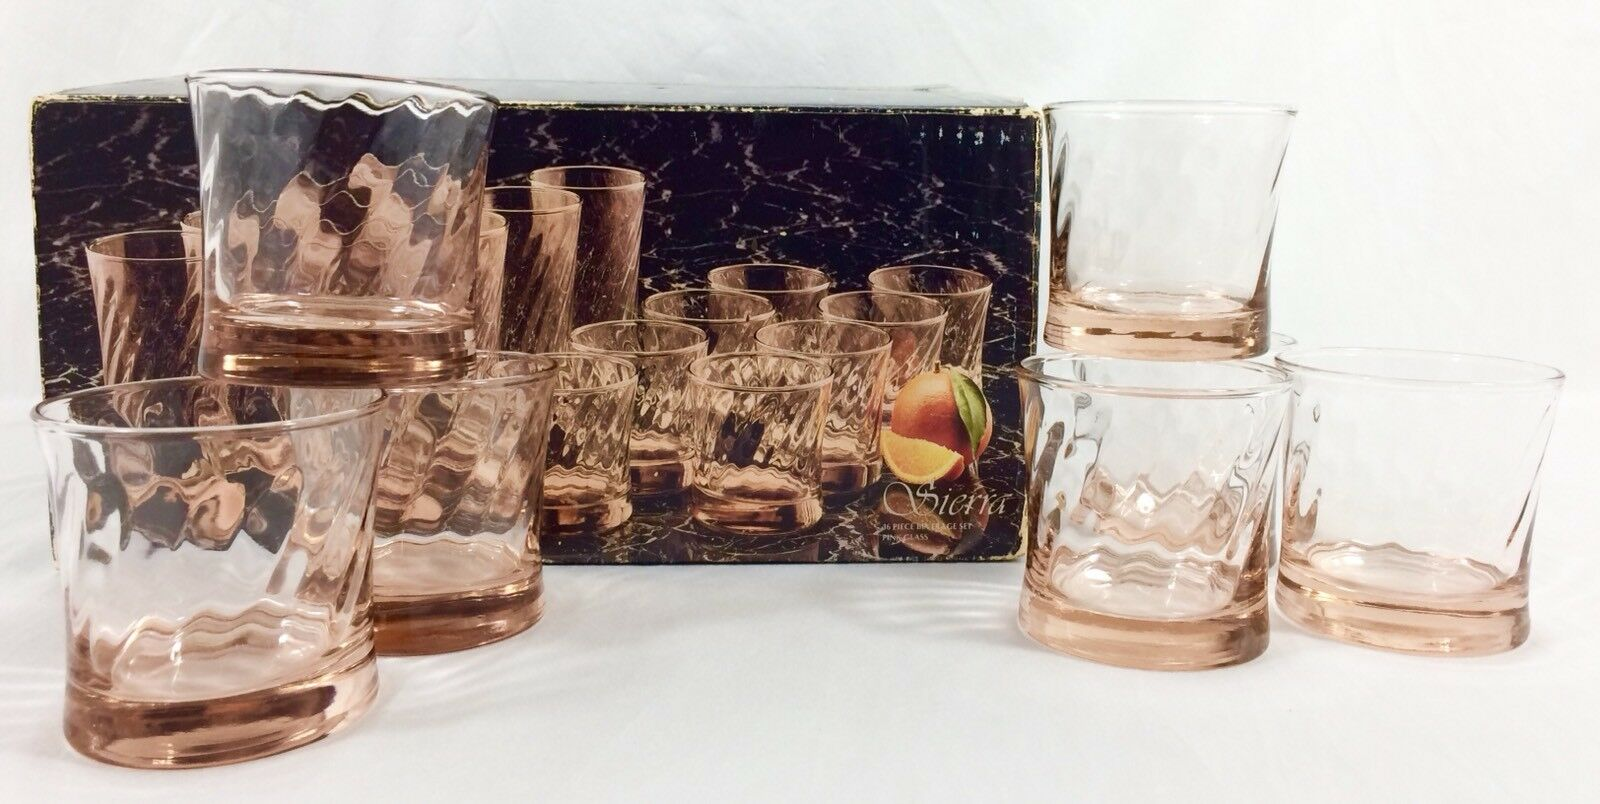 7 le toscany Collection Sierra rose optic Swirl Verres 10 oz (environ 283.49 g) Roches DOF USA RARE